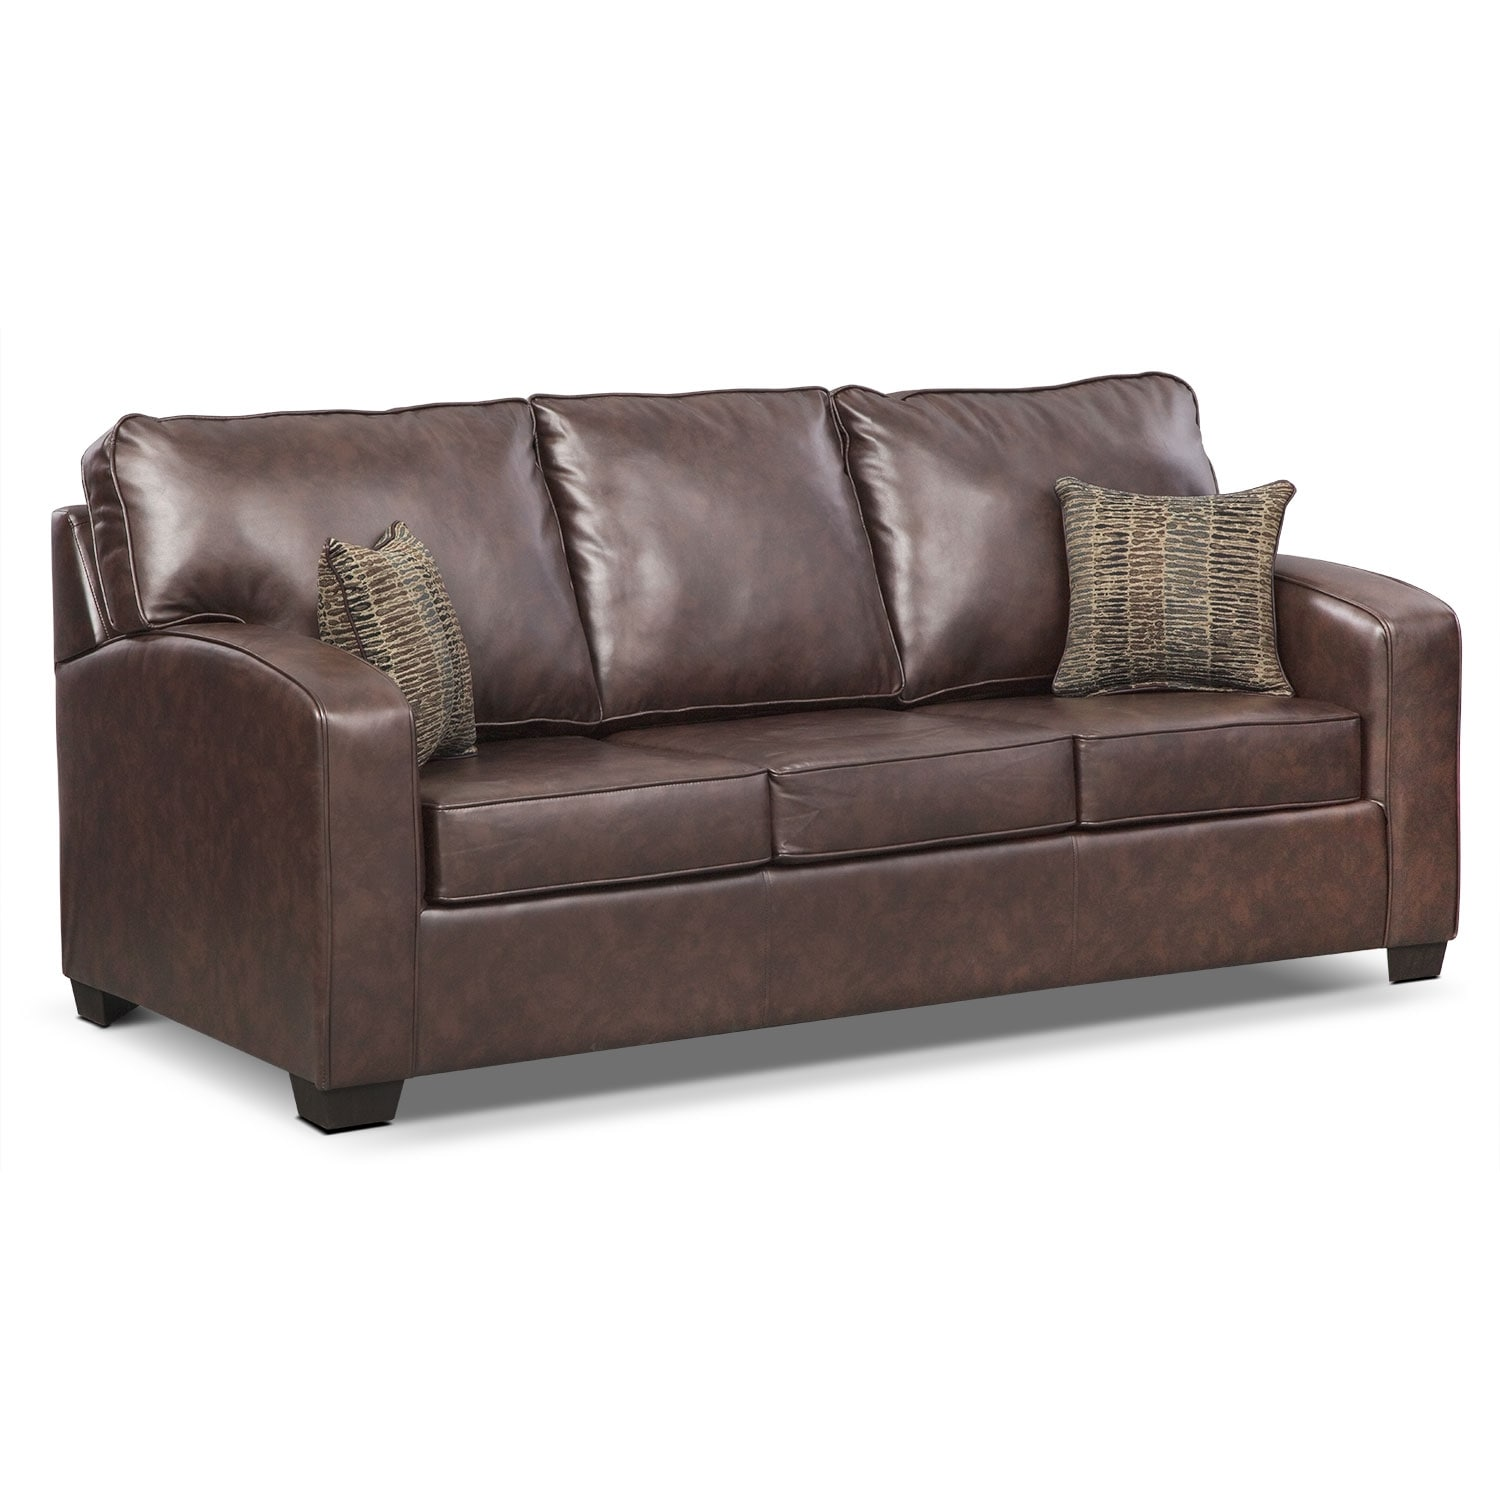 leather sectional sleeper sofa queen corner bed red brookline memory foam